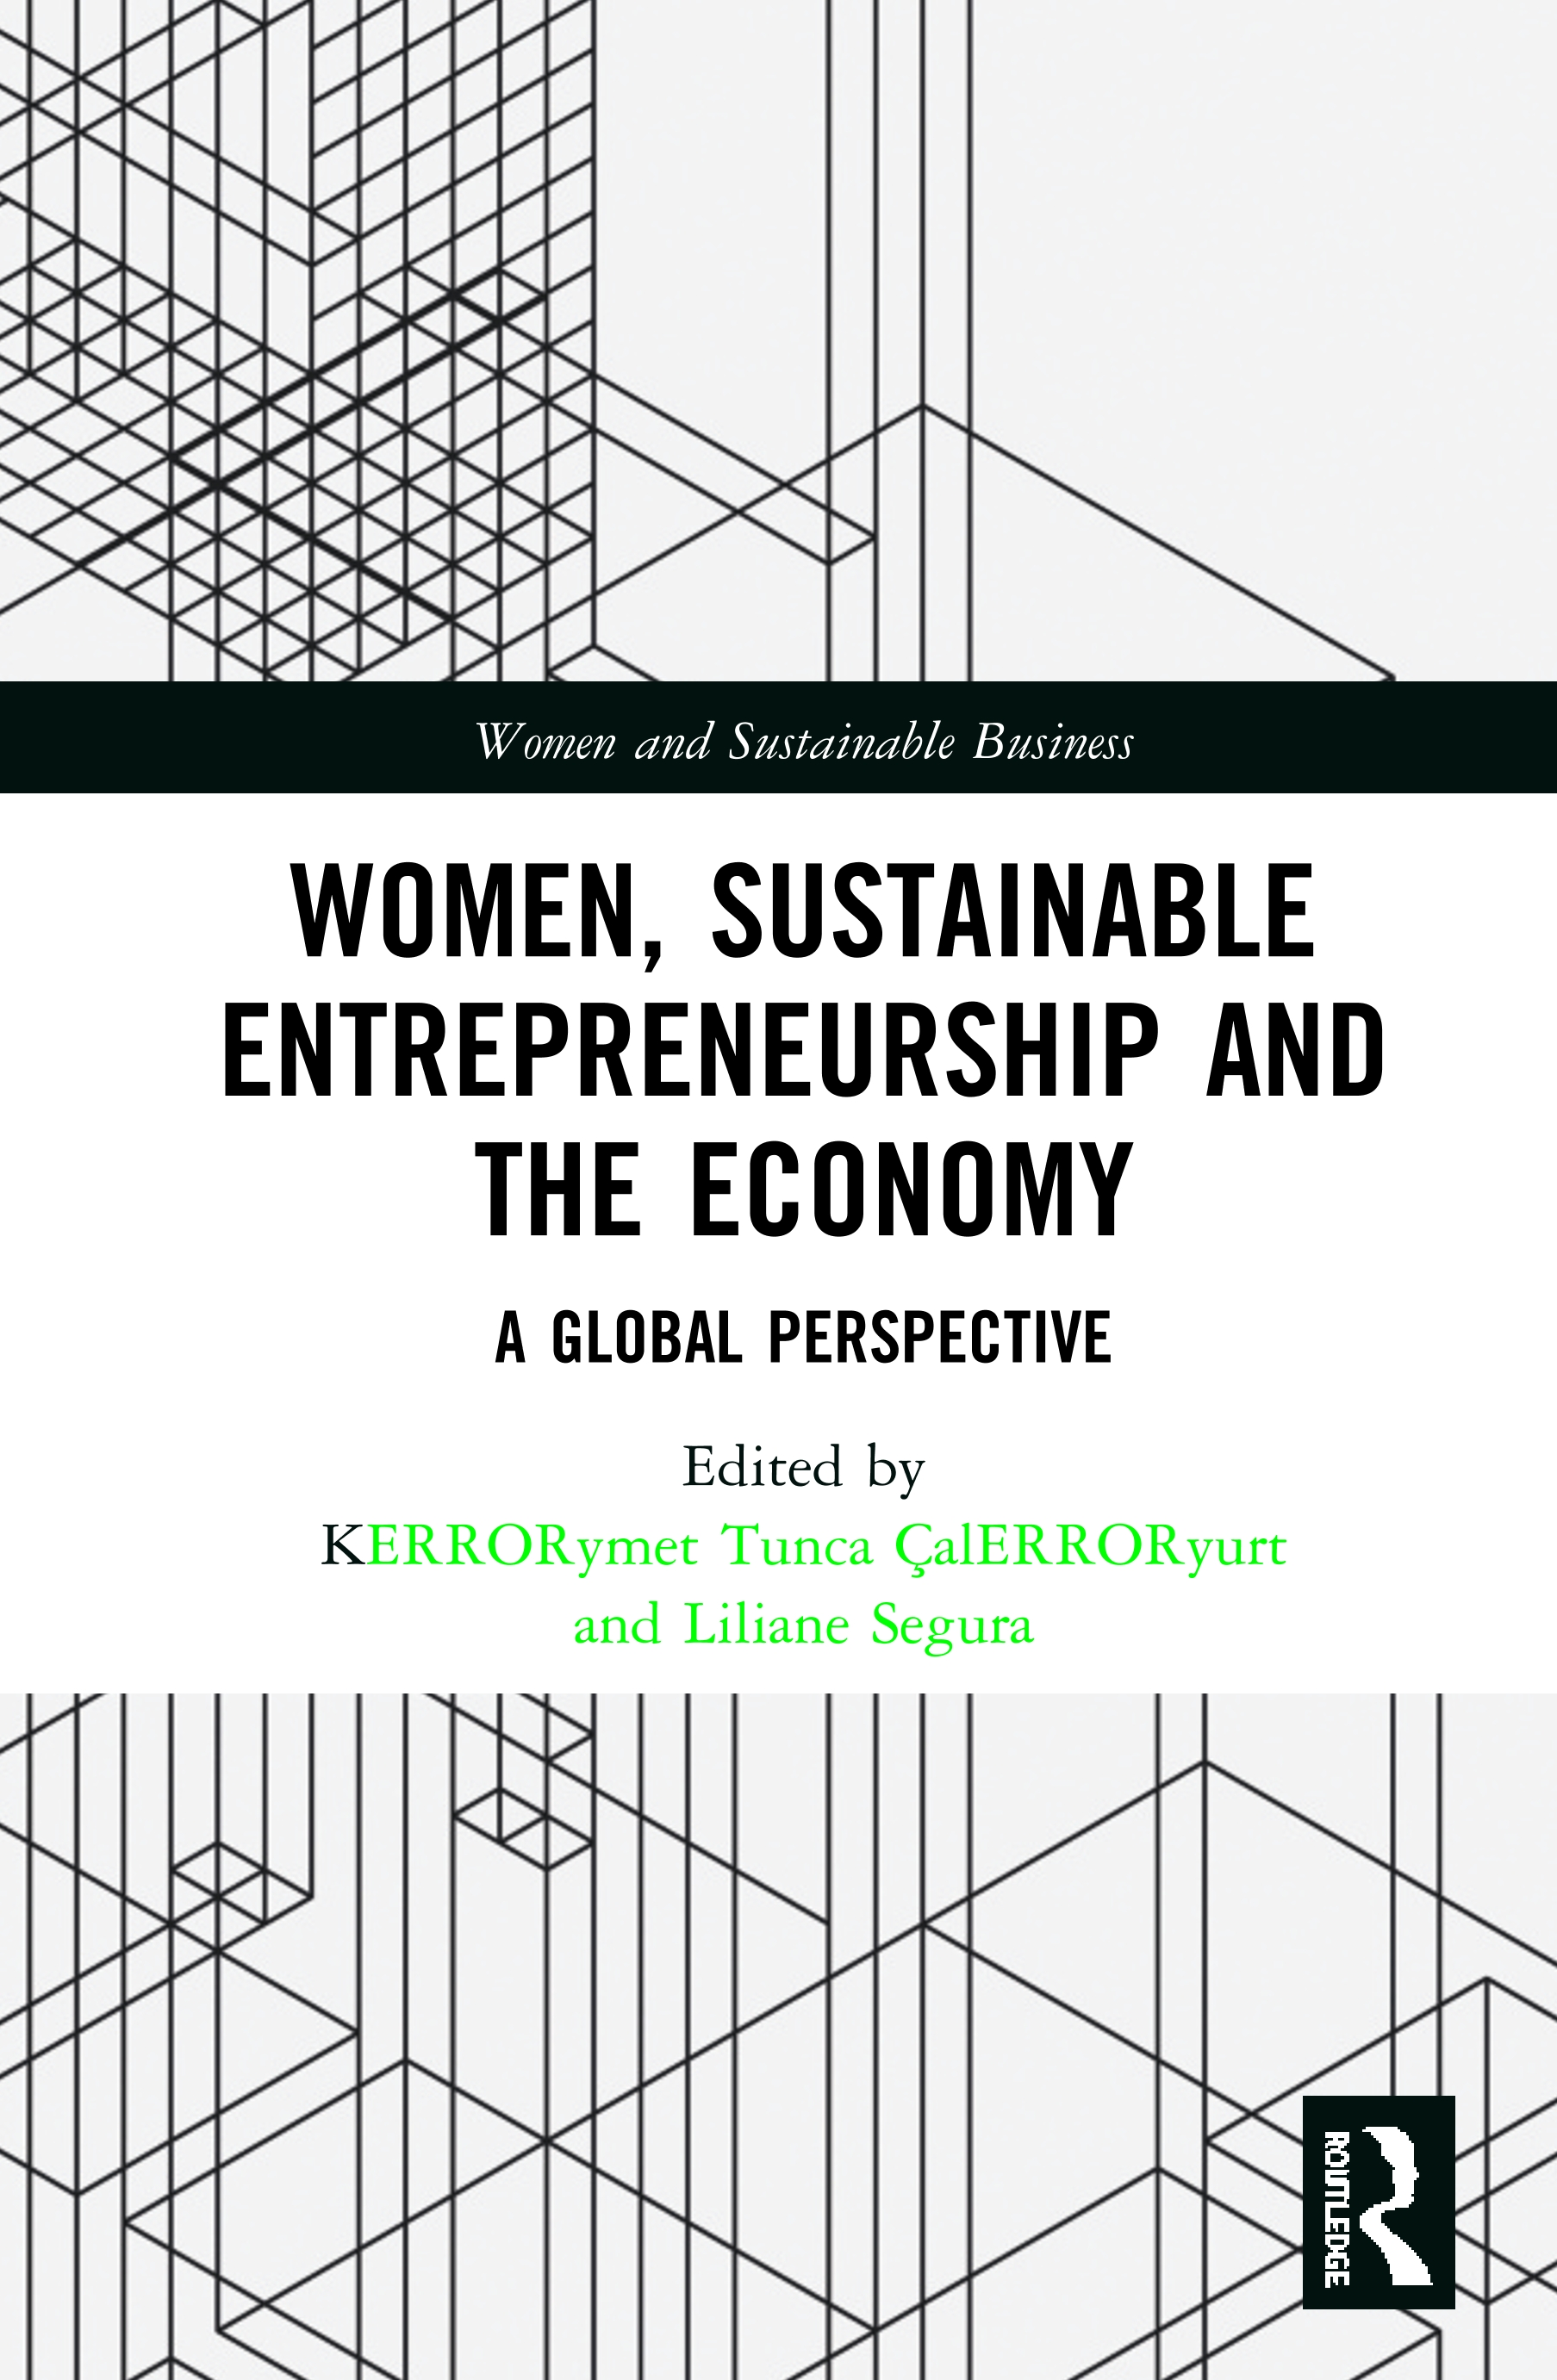 Women, Sustainable Entrepreneurship and the Economy: A Global Perspective book cover